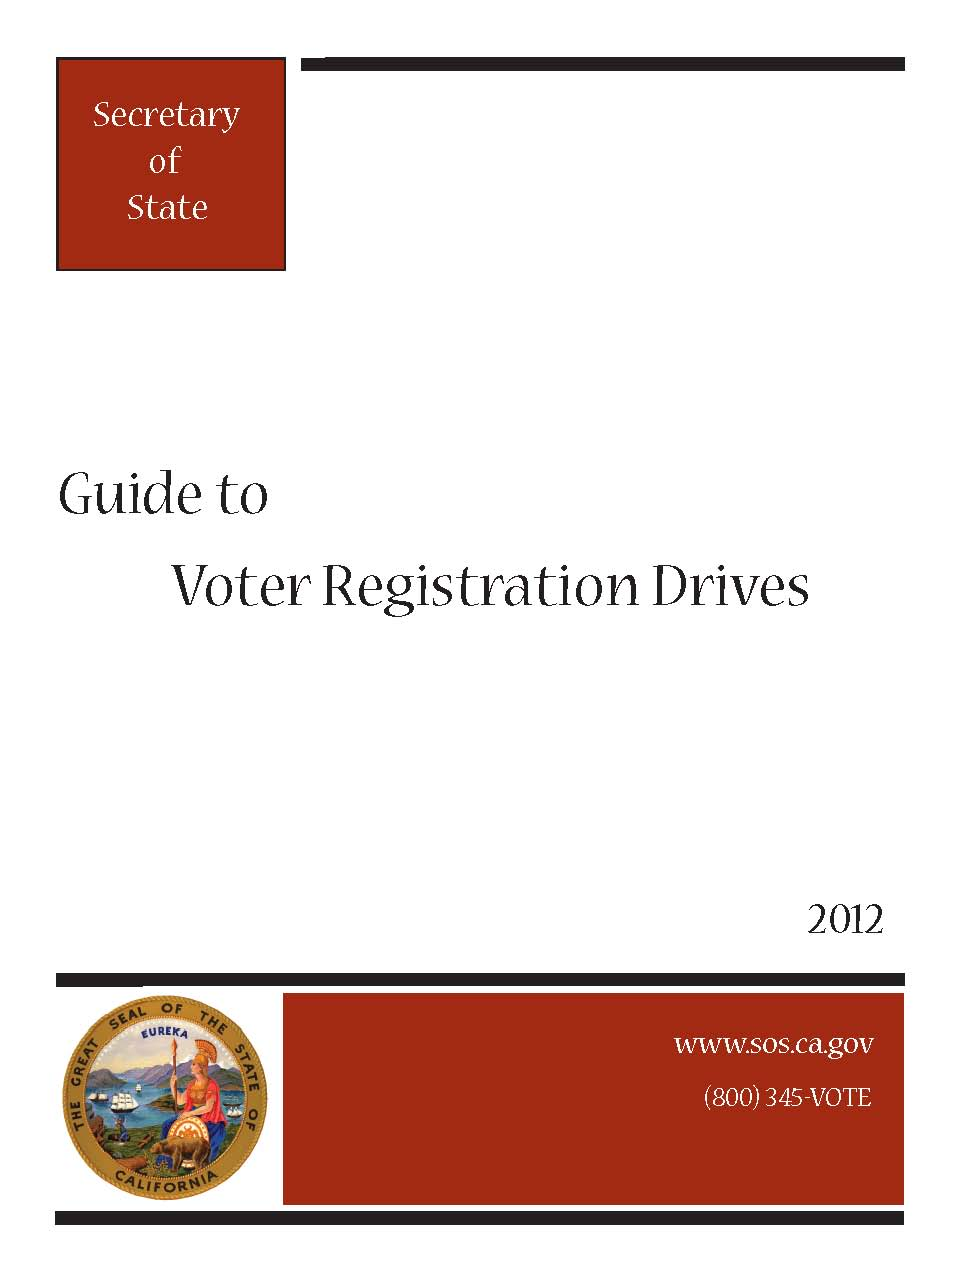 Sectretary_of_State_Voter_Drive_Guide_pg_1_jpg.jpg